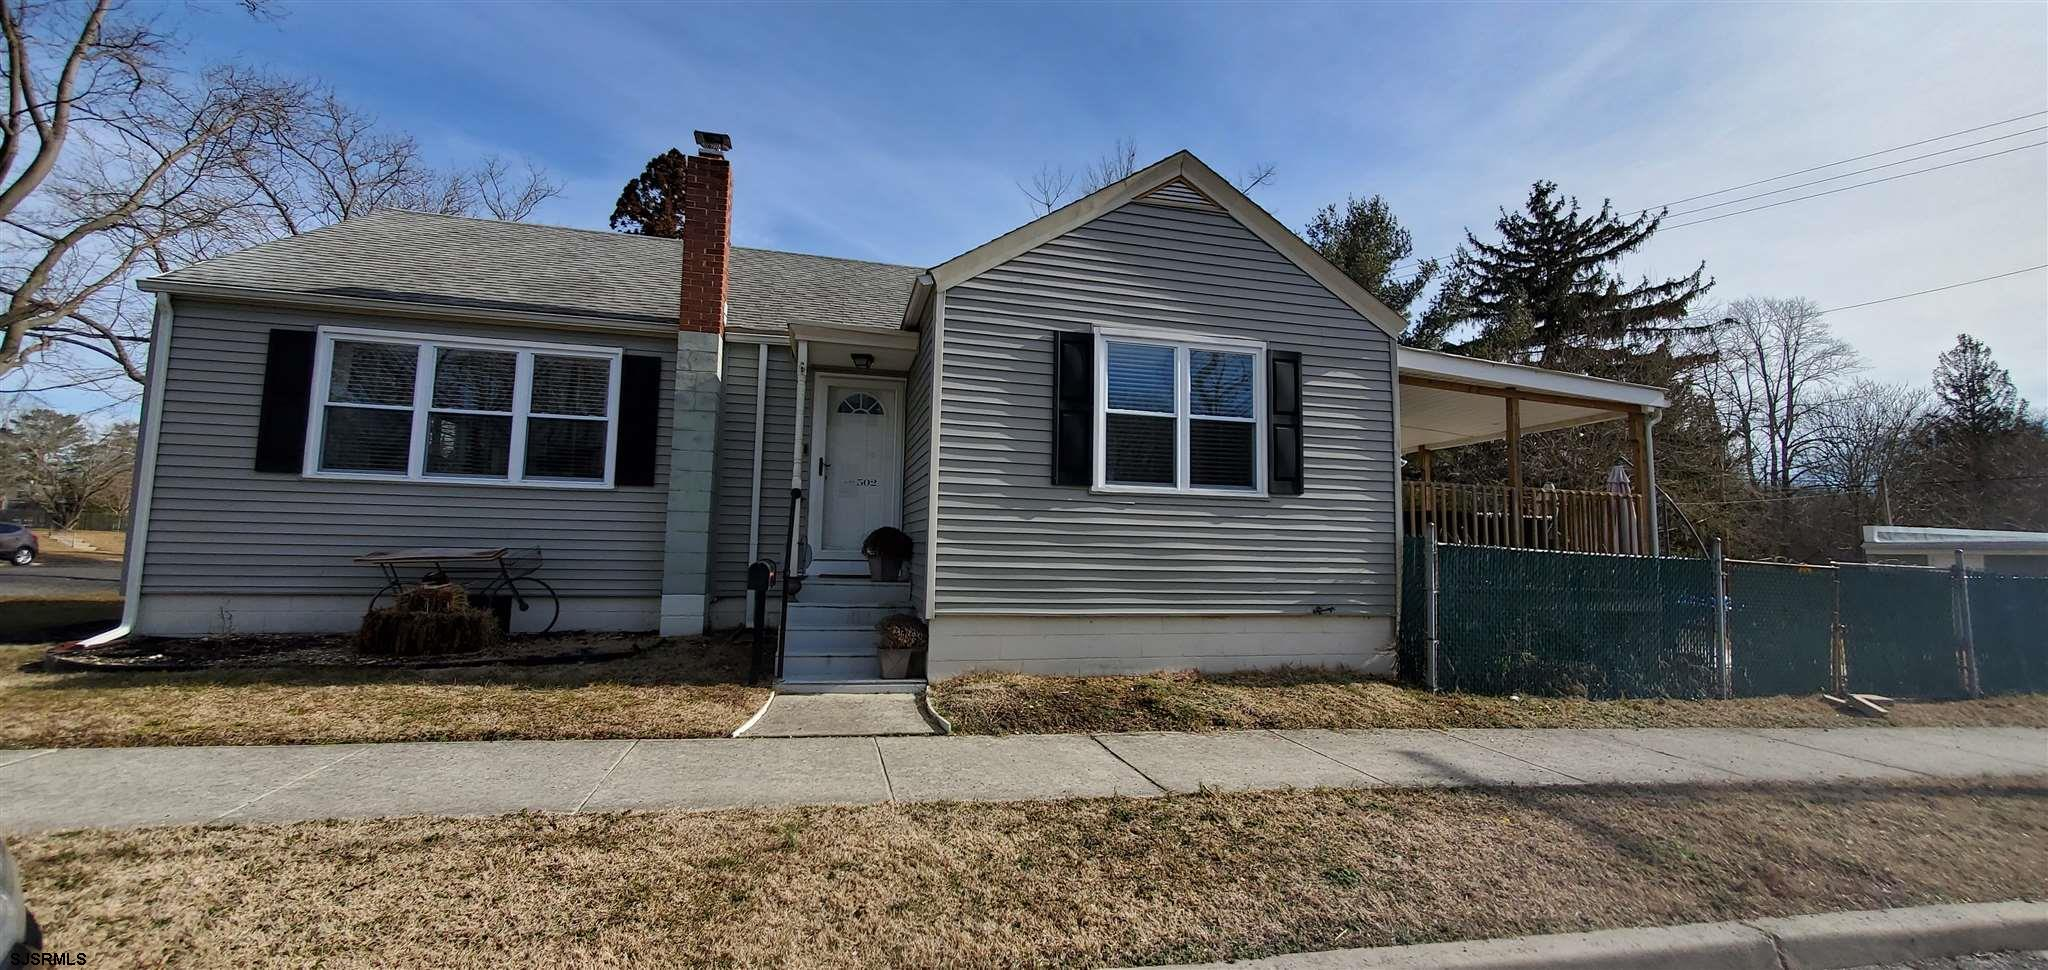 Beautiful recently renovated 2 bedroom home with a lovely fenced yard in a quiet neighborhood! Comes